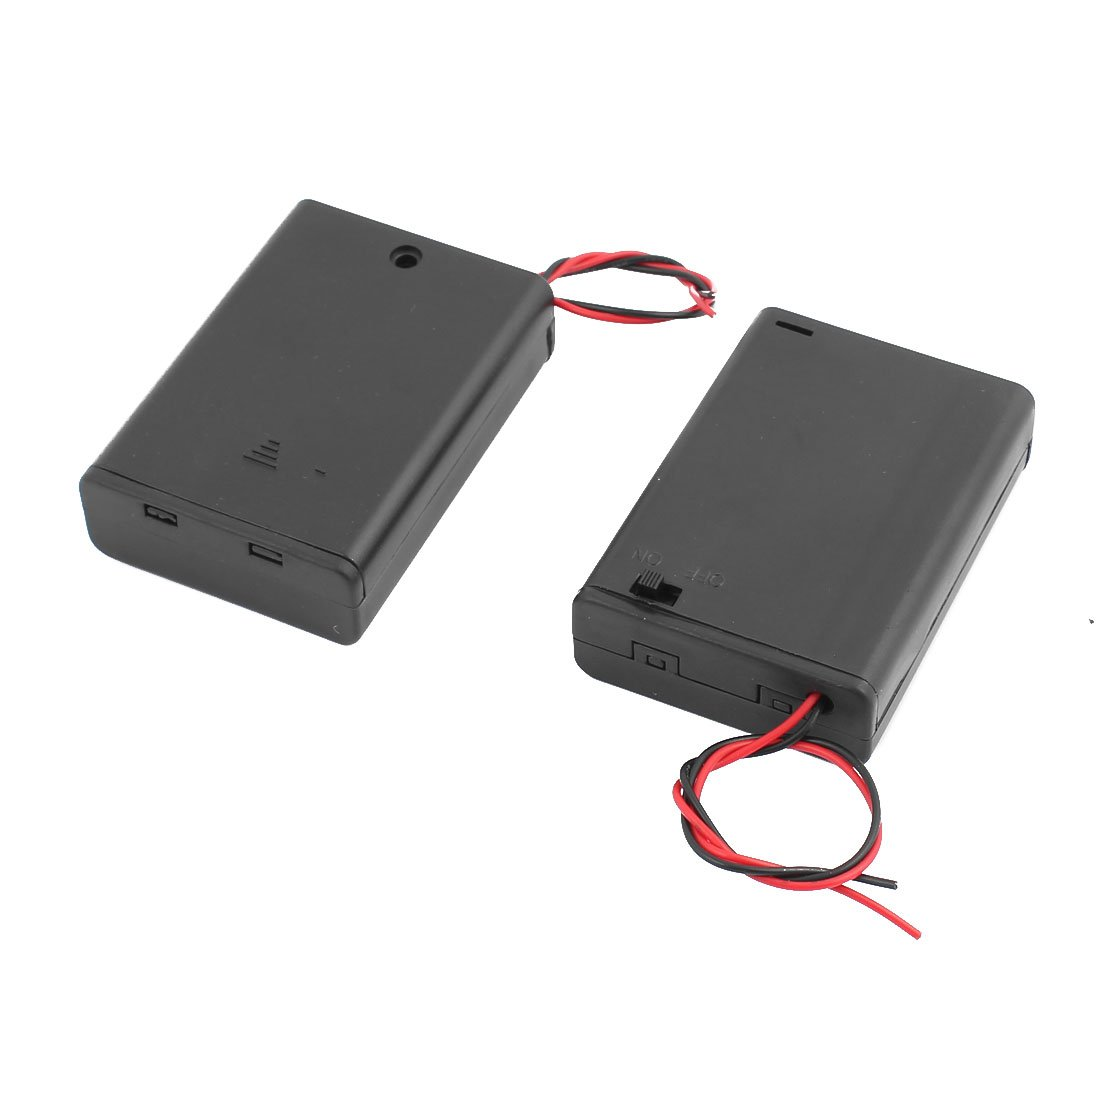 sourcingmap 2 Pcs ON/OFF Switch 2 Wires Batteries Holder Box w Cover for 3 x 1.5V AA Battery